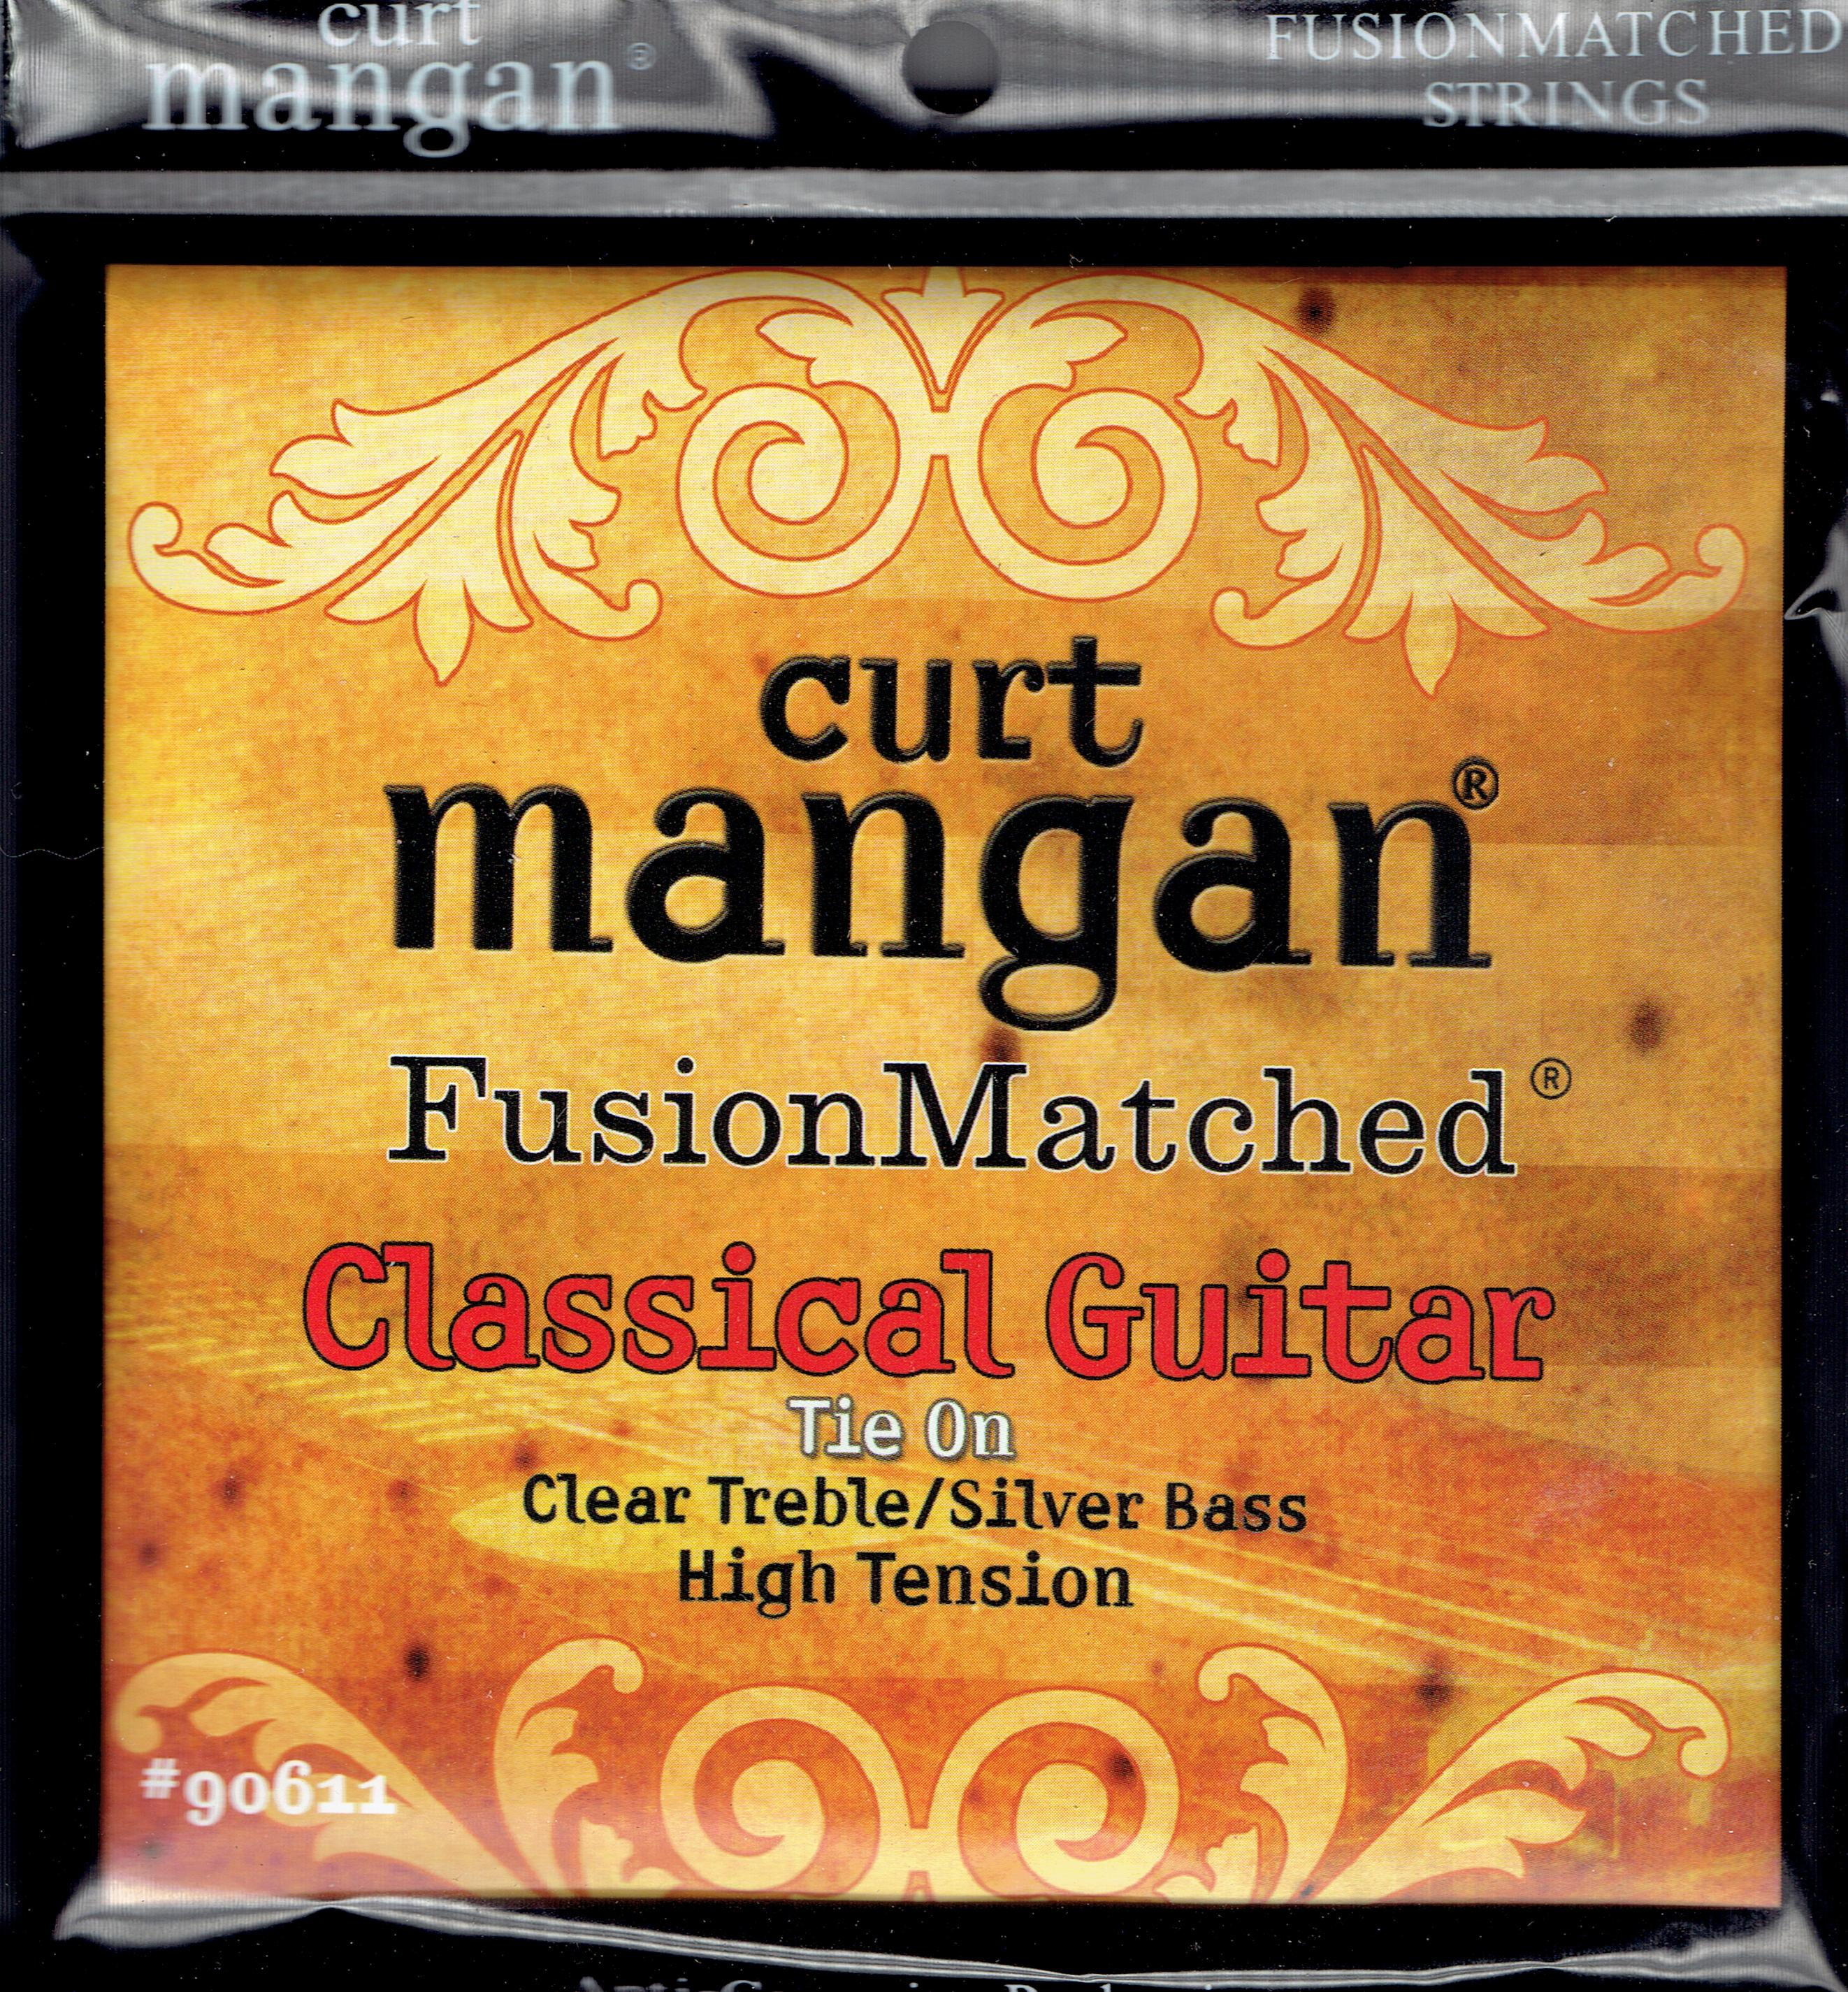 Curt Mangan Classical guitar strings high tension tie on